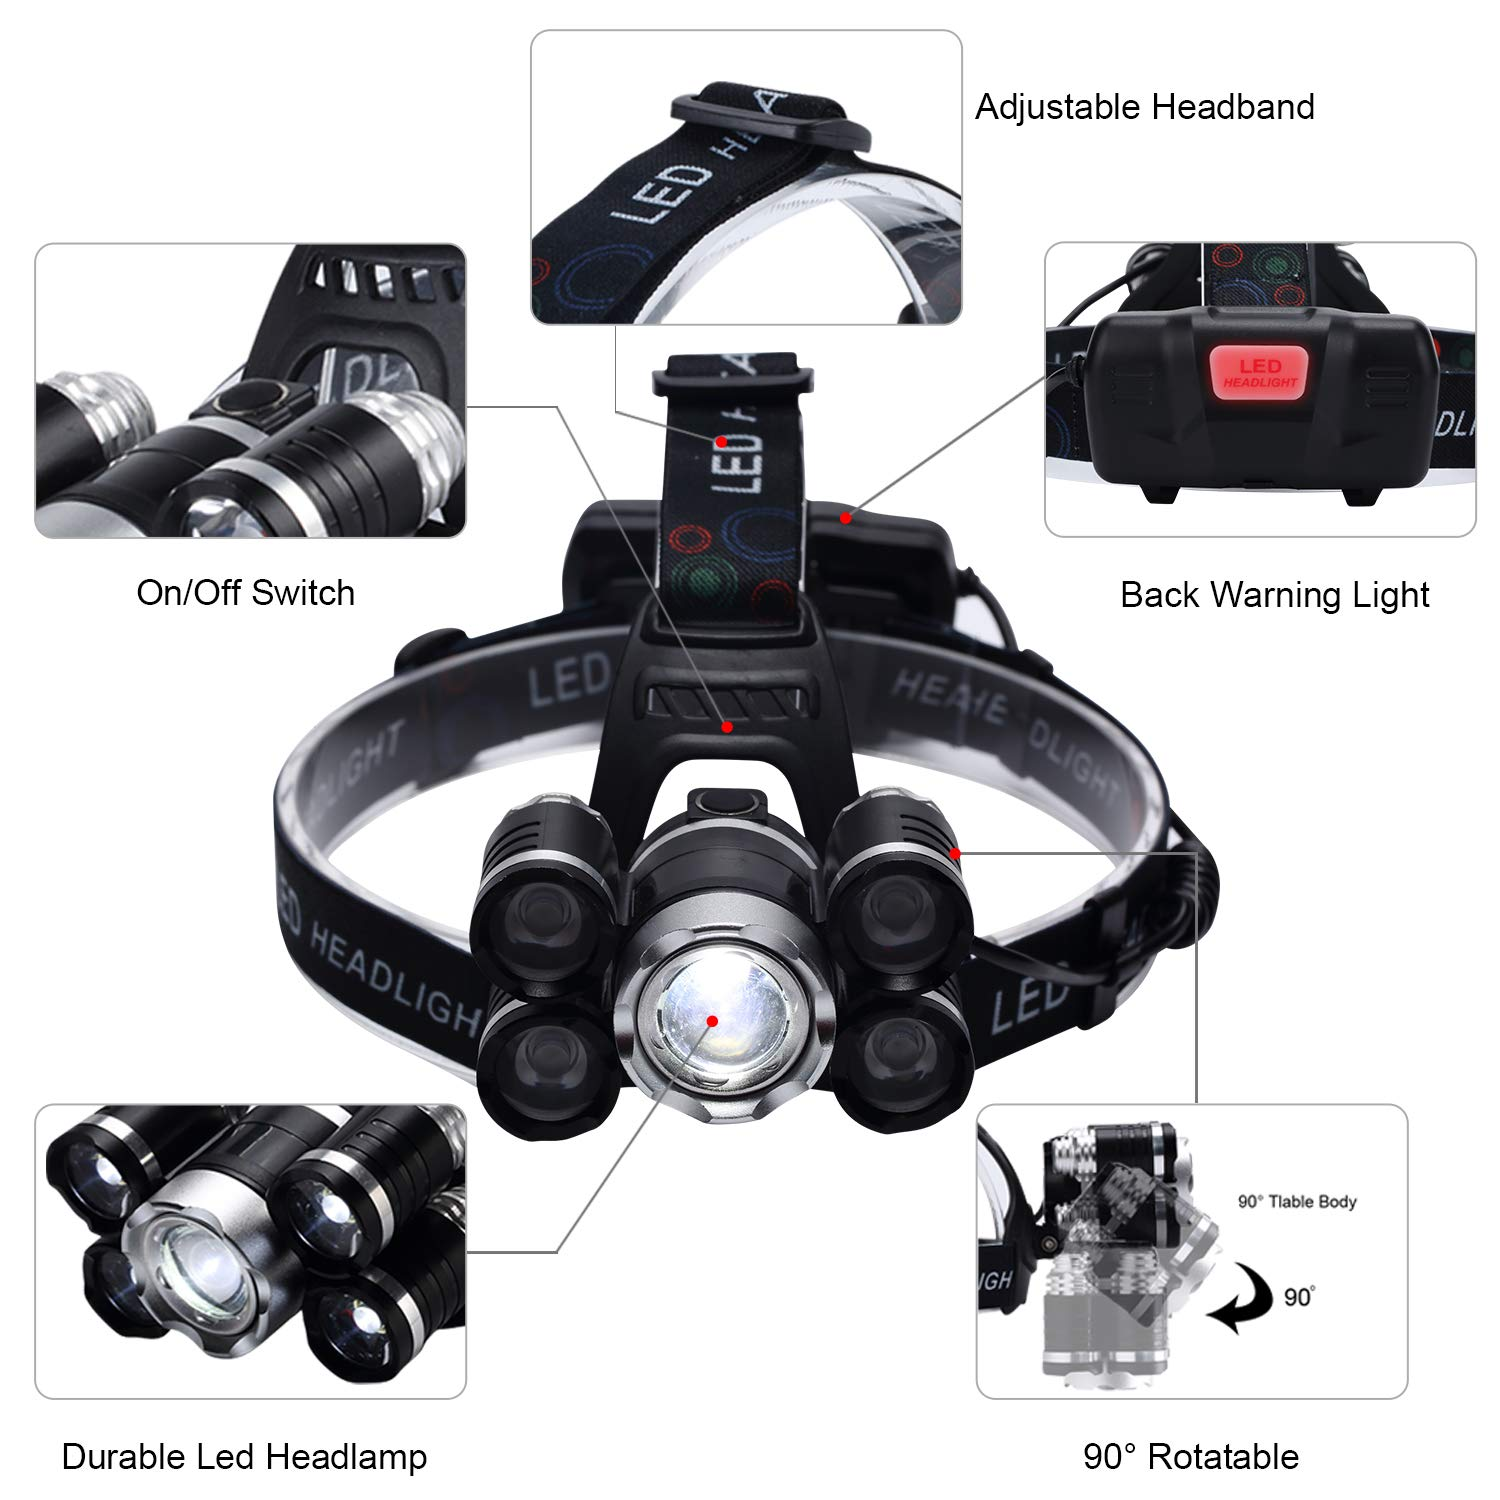 KKlite LED Rechargeable Headlamp Headlights - Brightest 6800 lumen Waterproof Work Head Flashlight included 18650 Batteries Car Charger Wall Charger and USB Cable for Camping Running Cycling Hiking